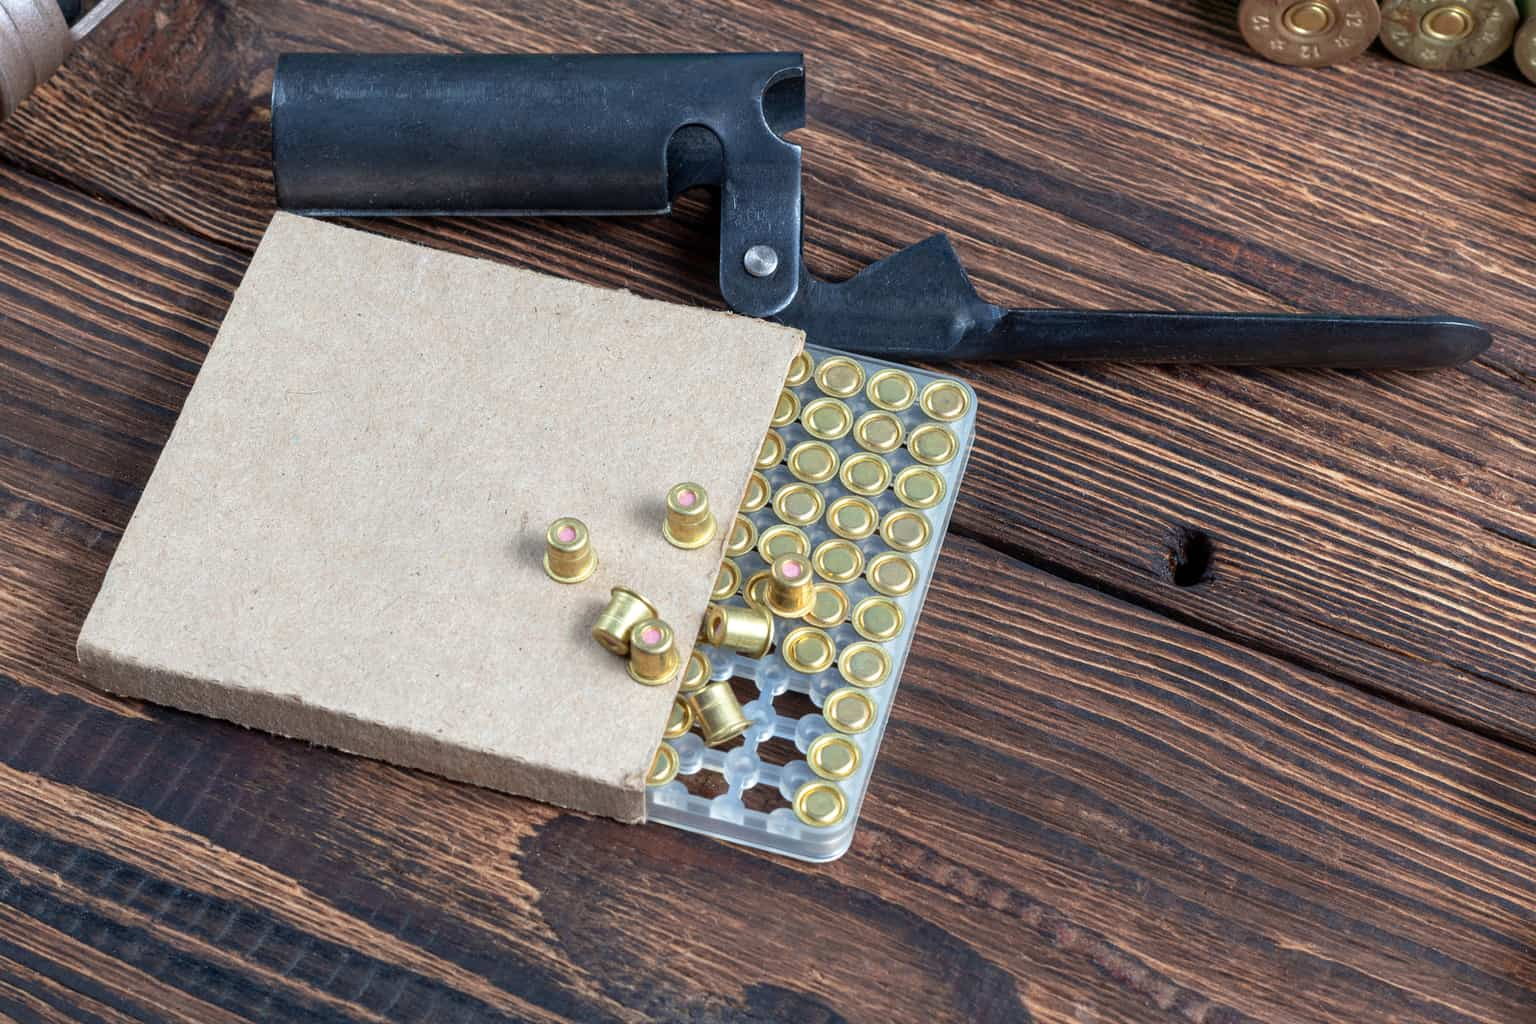 Hand priming tool with a box of shotgun shells